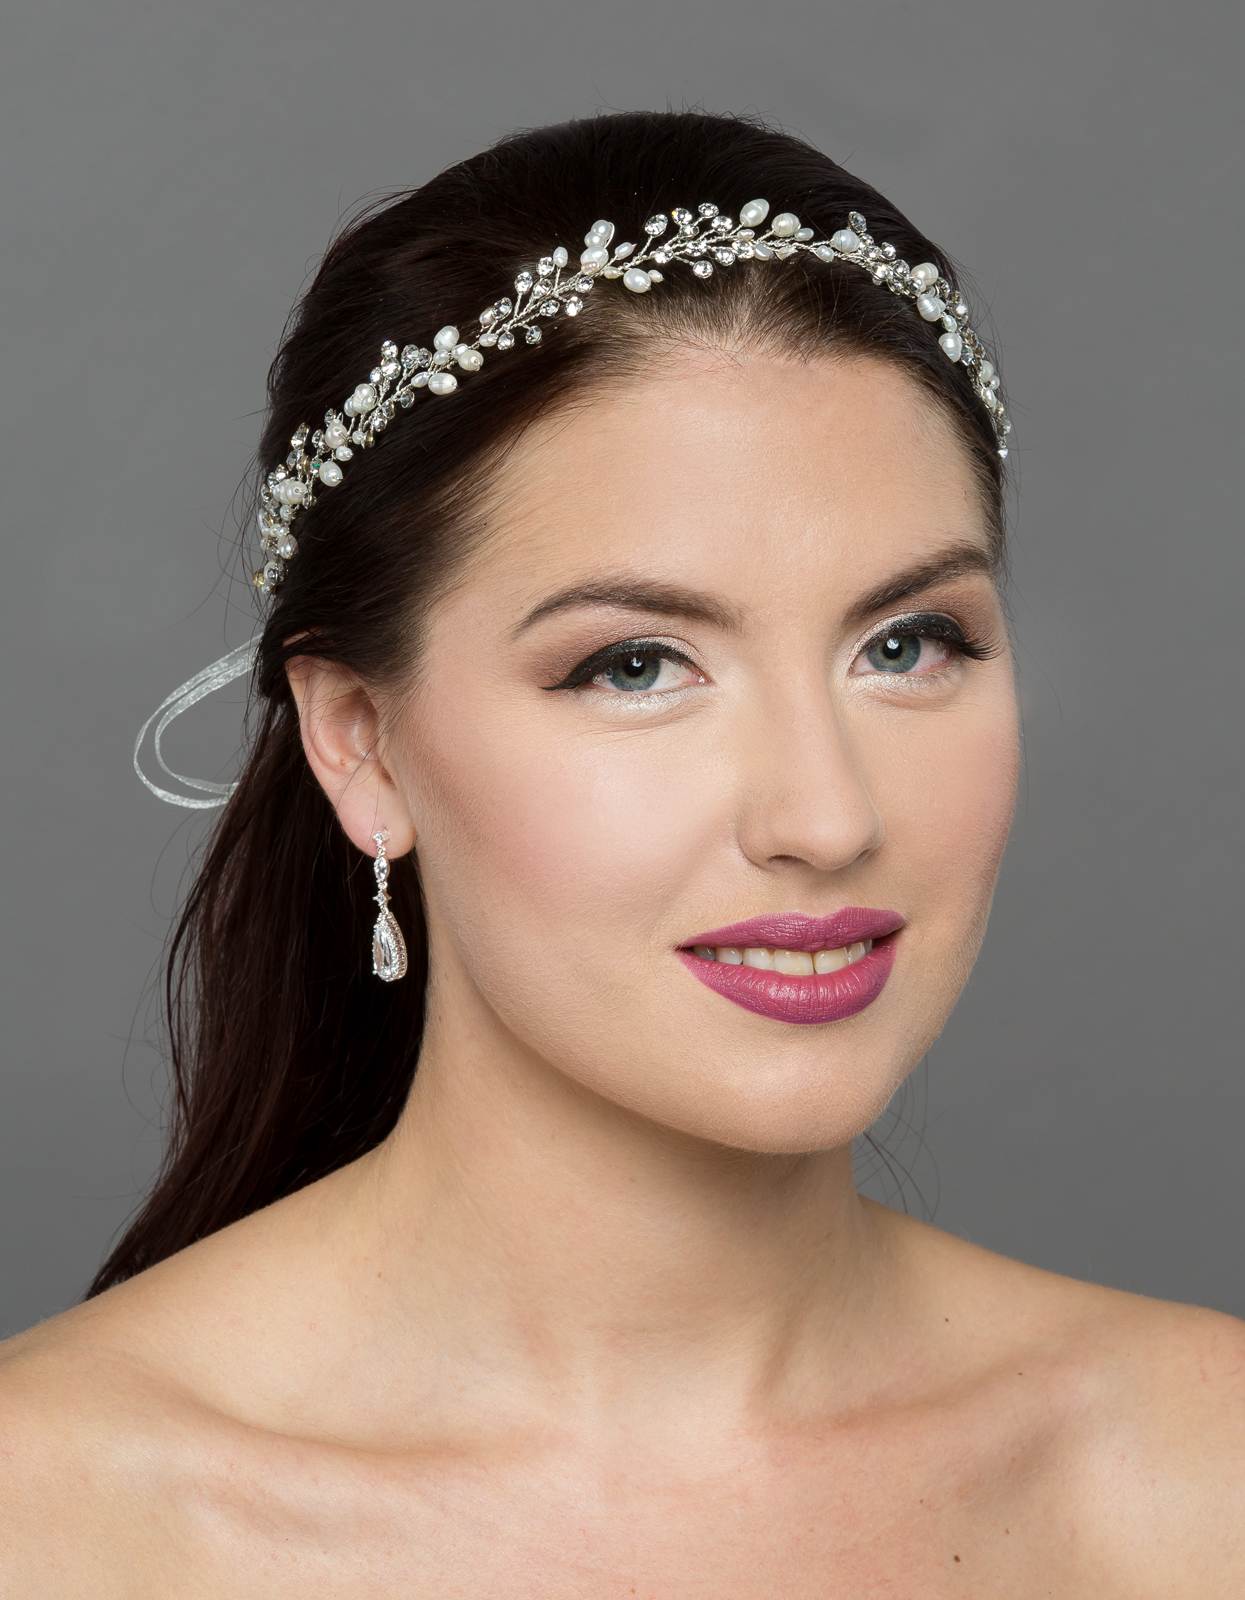 Bridal Classics Headbands & Wreaths HB-7072